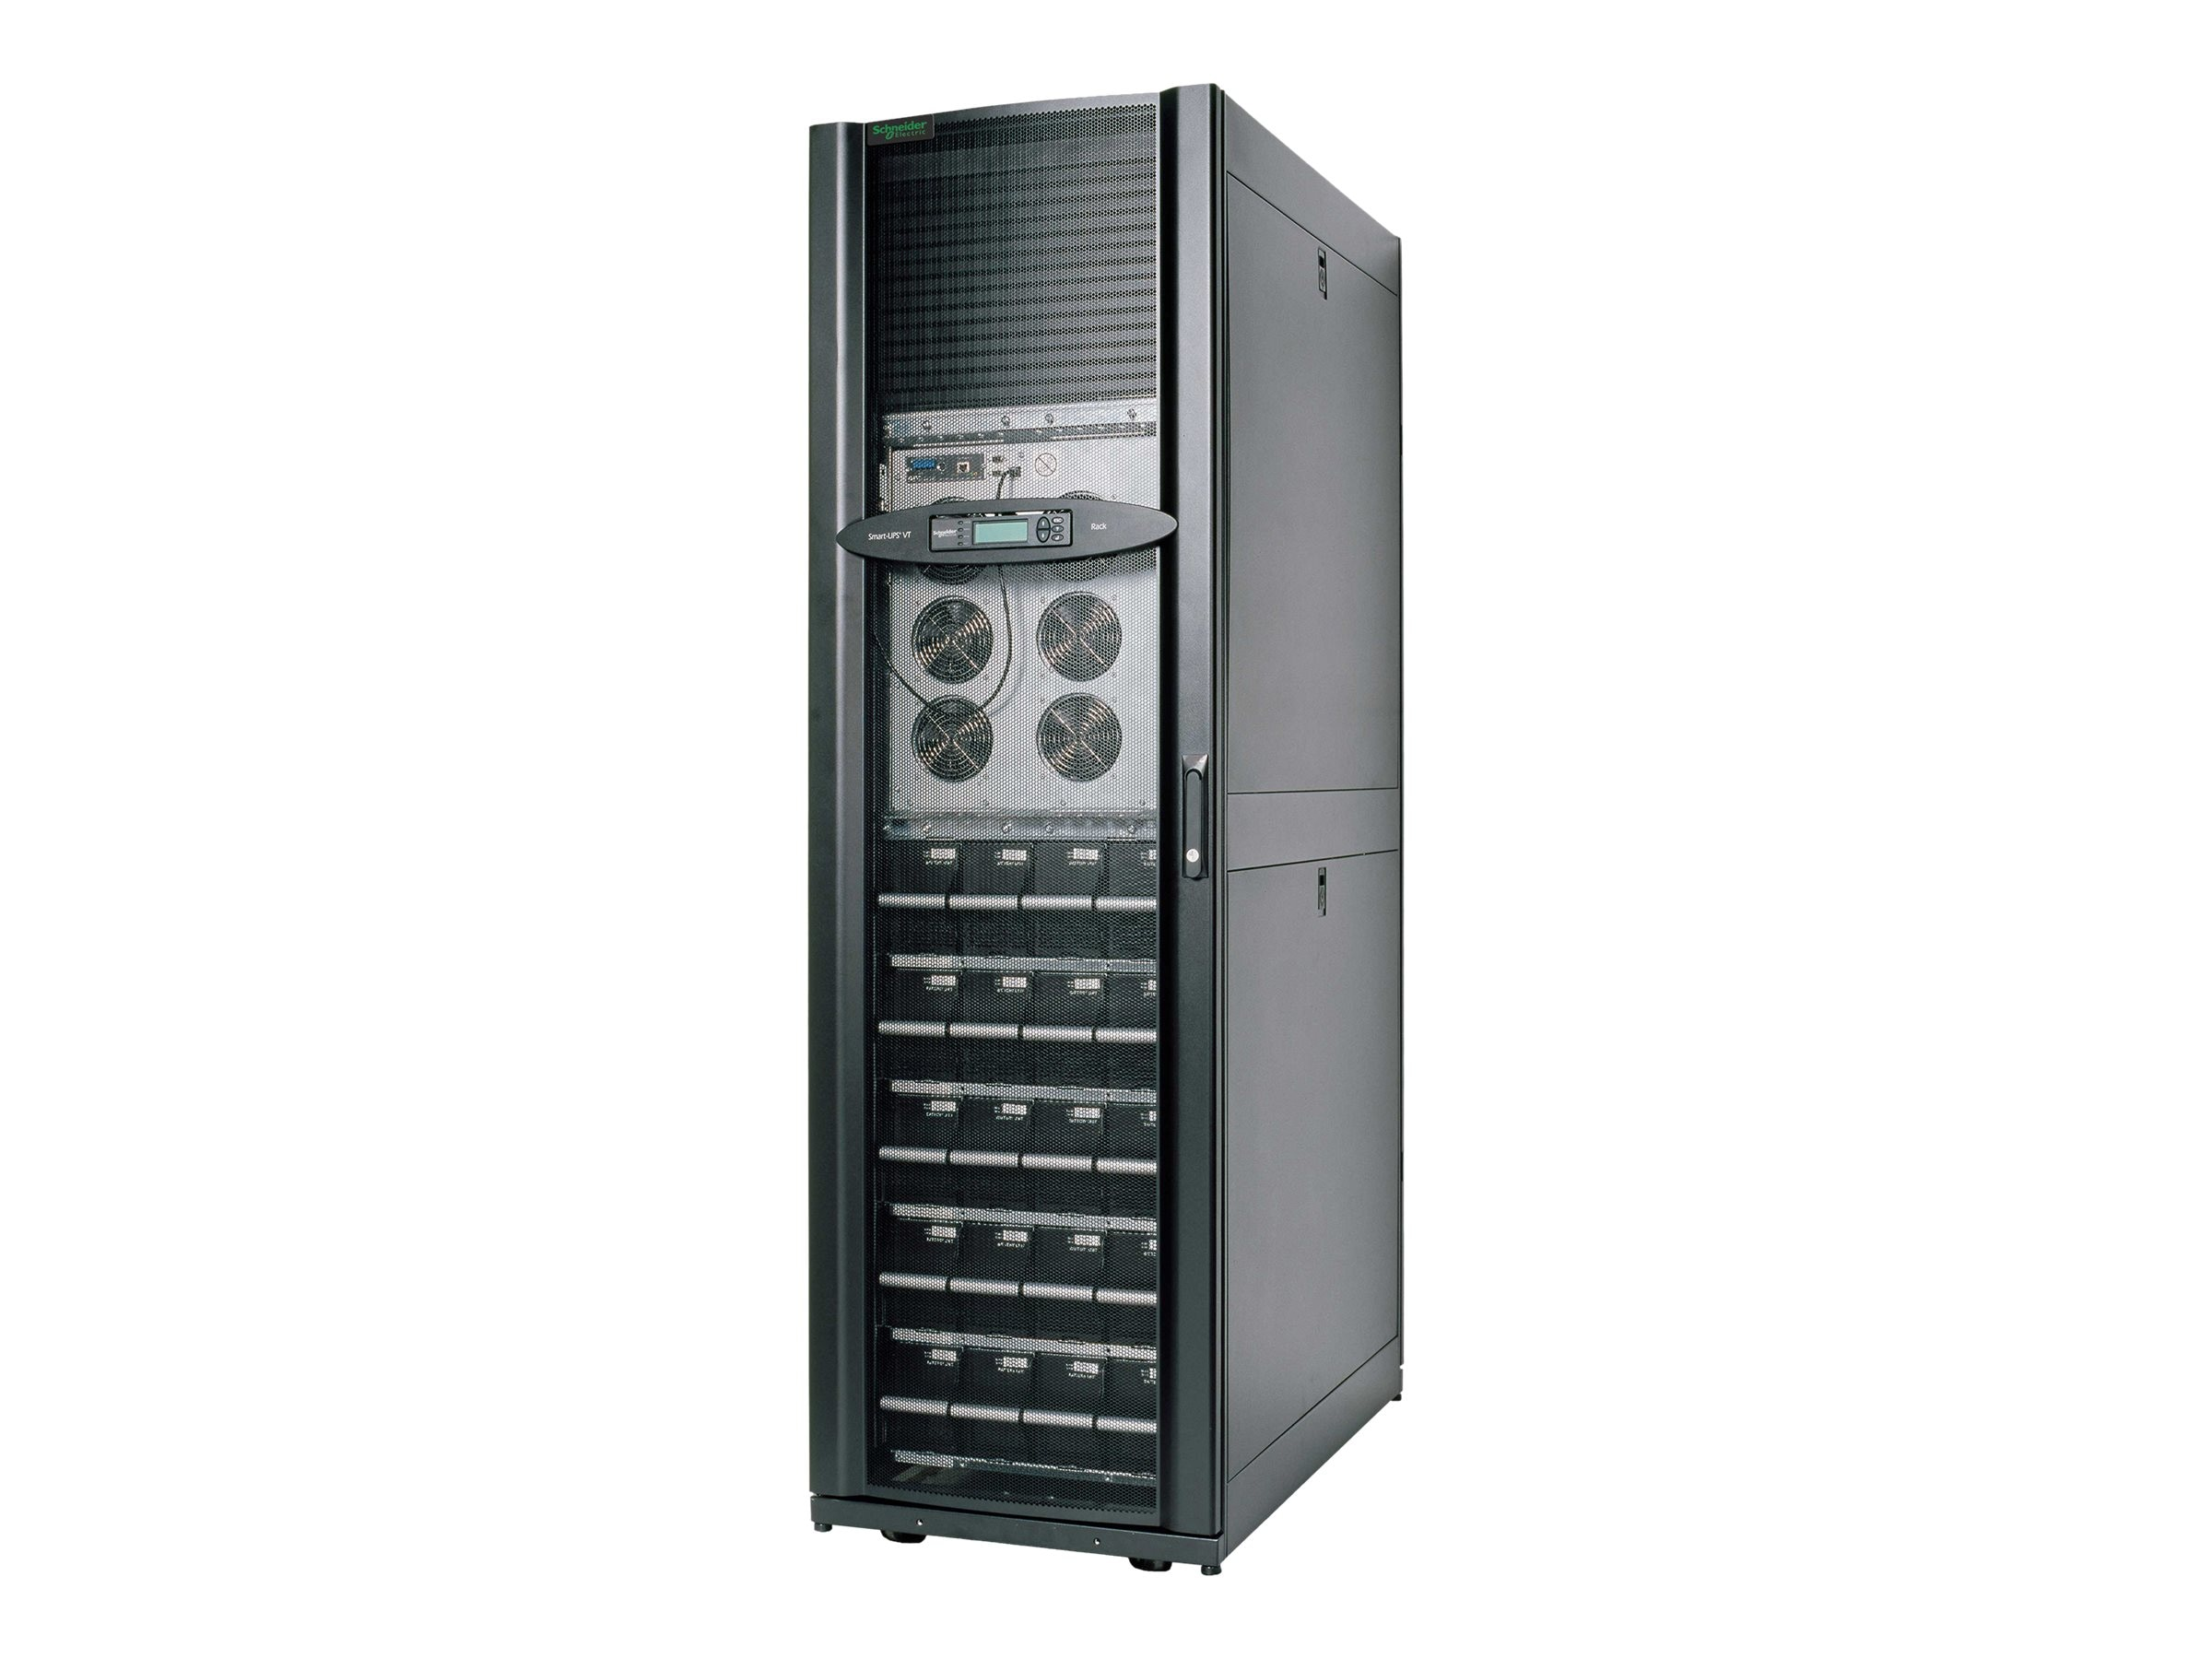 APC Smart-UPS VT 20kVA 208V Rack Mounted, (4) Battery Modules Expandable to (5), PDU, Startup Service, SUVTR20KF4B5S